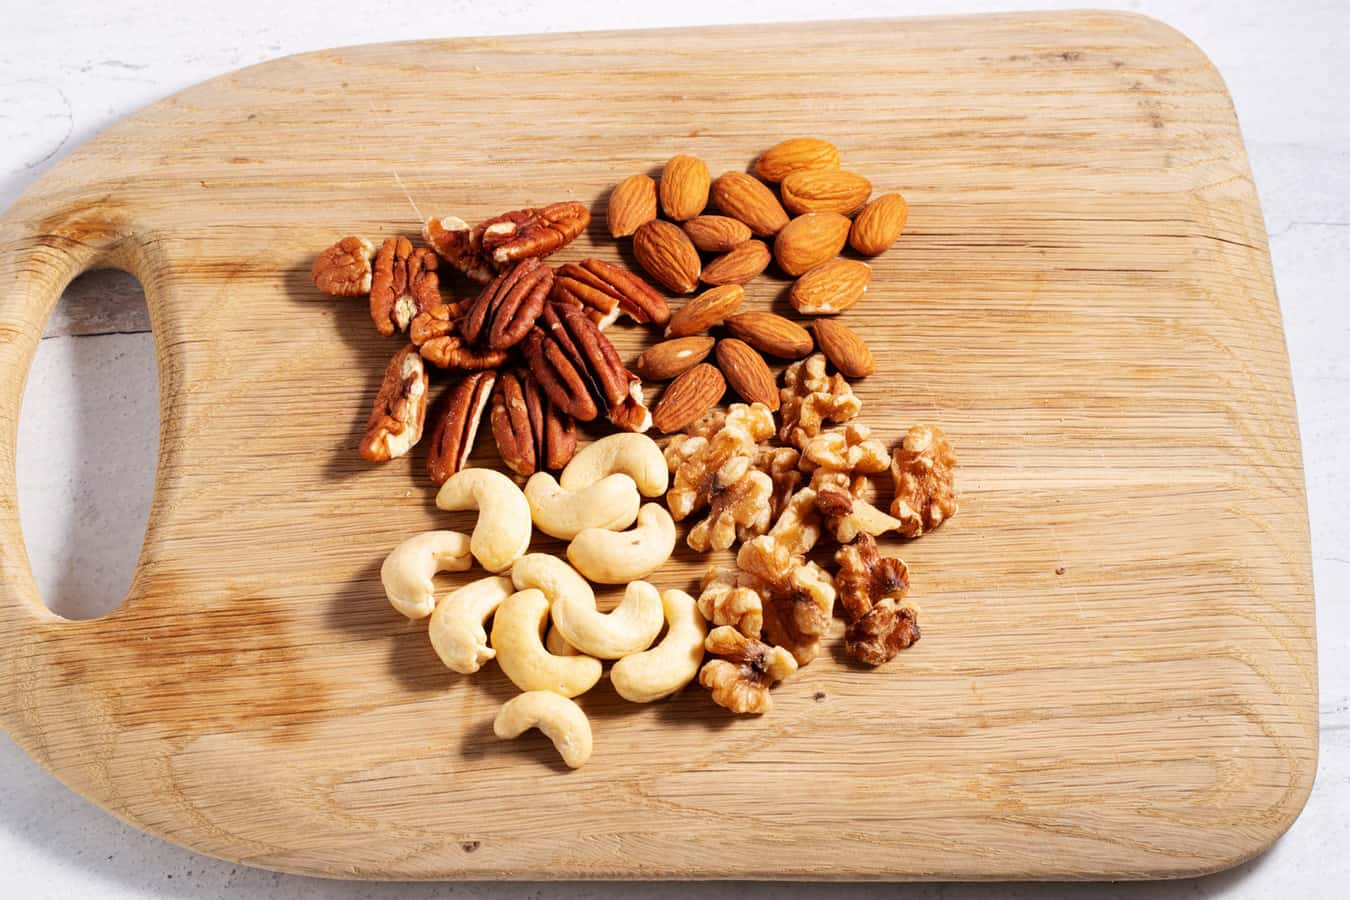 piles of pecans, almonds, walnuts, and cashews